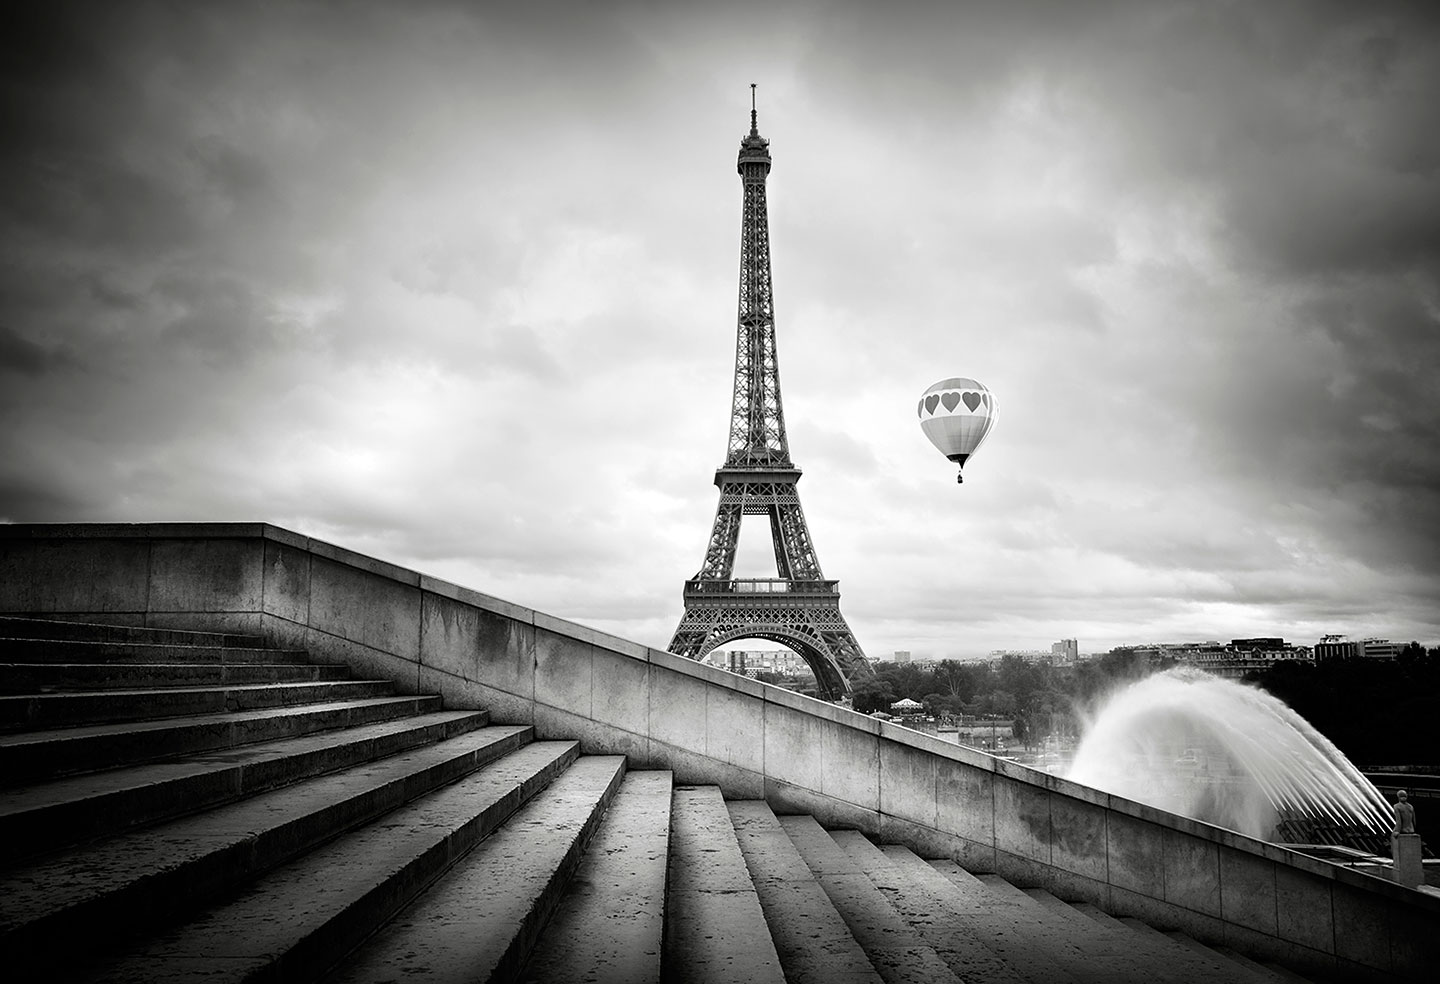 Hot air ballom and Eiffel Tower Eiffel tower from Trocadero garden : Stock Photo      Comp     Embed     Share     Add to Board  Eiffel tower, from Trocadero garden